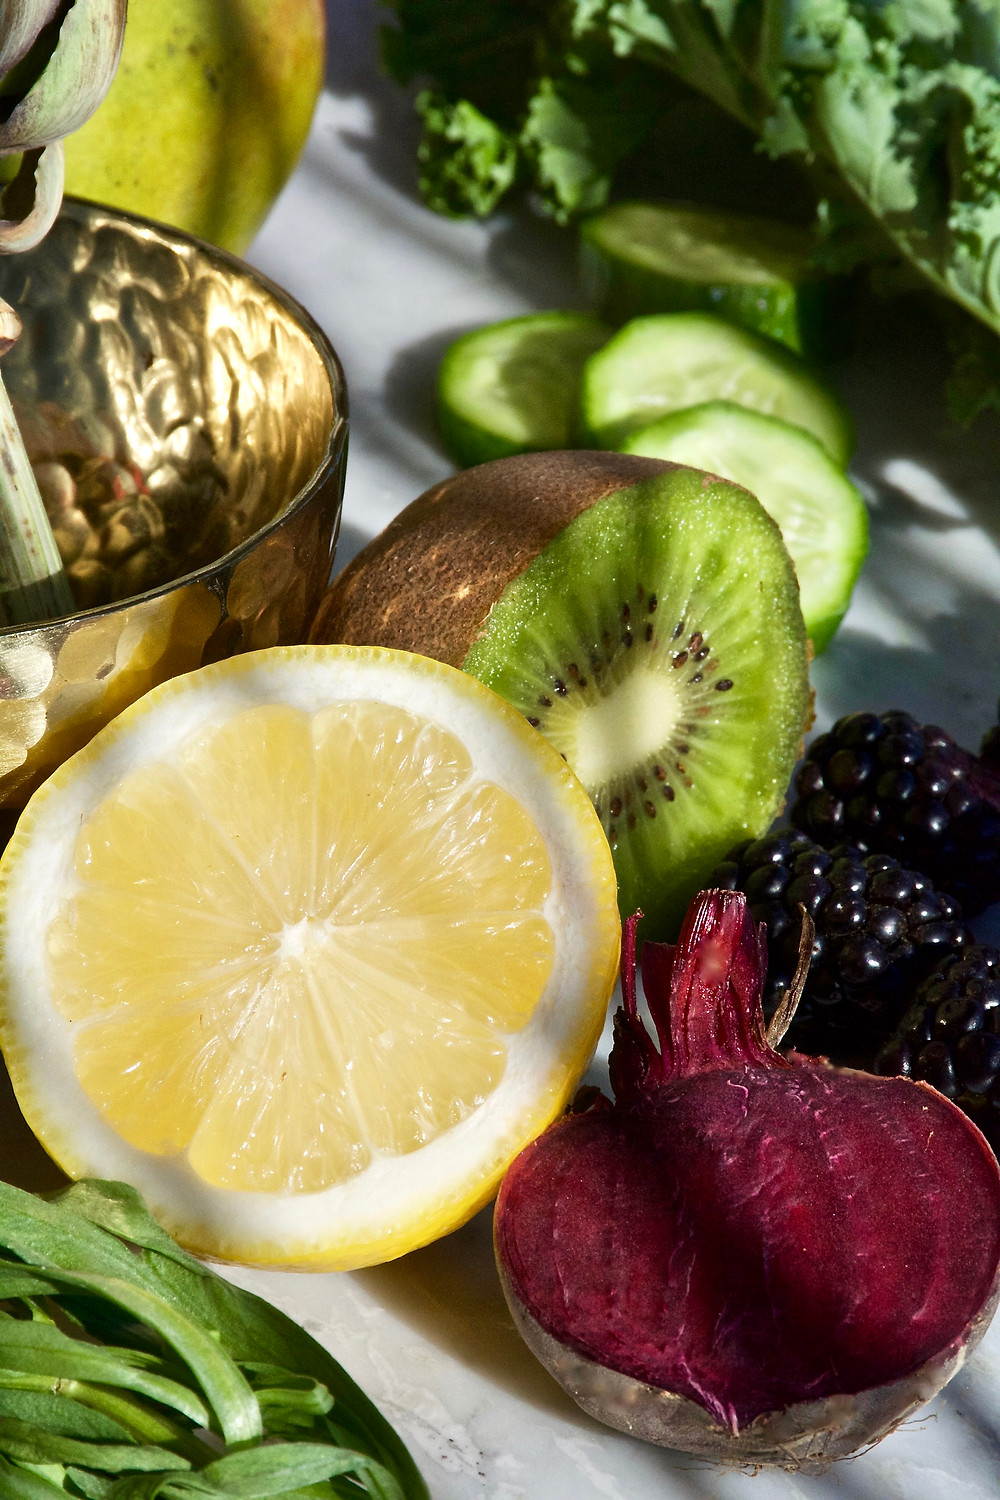 The Beauty Benefits of Nutrients, Clean Food, Beauty Food, Food for Beauty, Clean Eating, The Wellness Edit, The Beauty Edit, The Golden Edition, Health